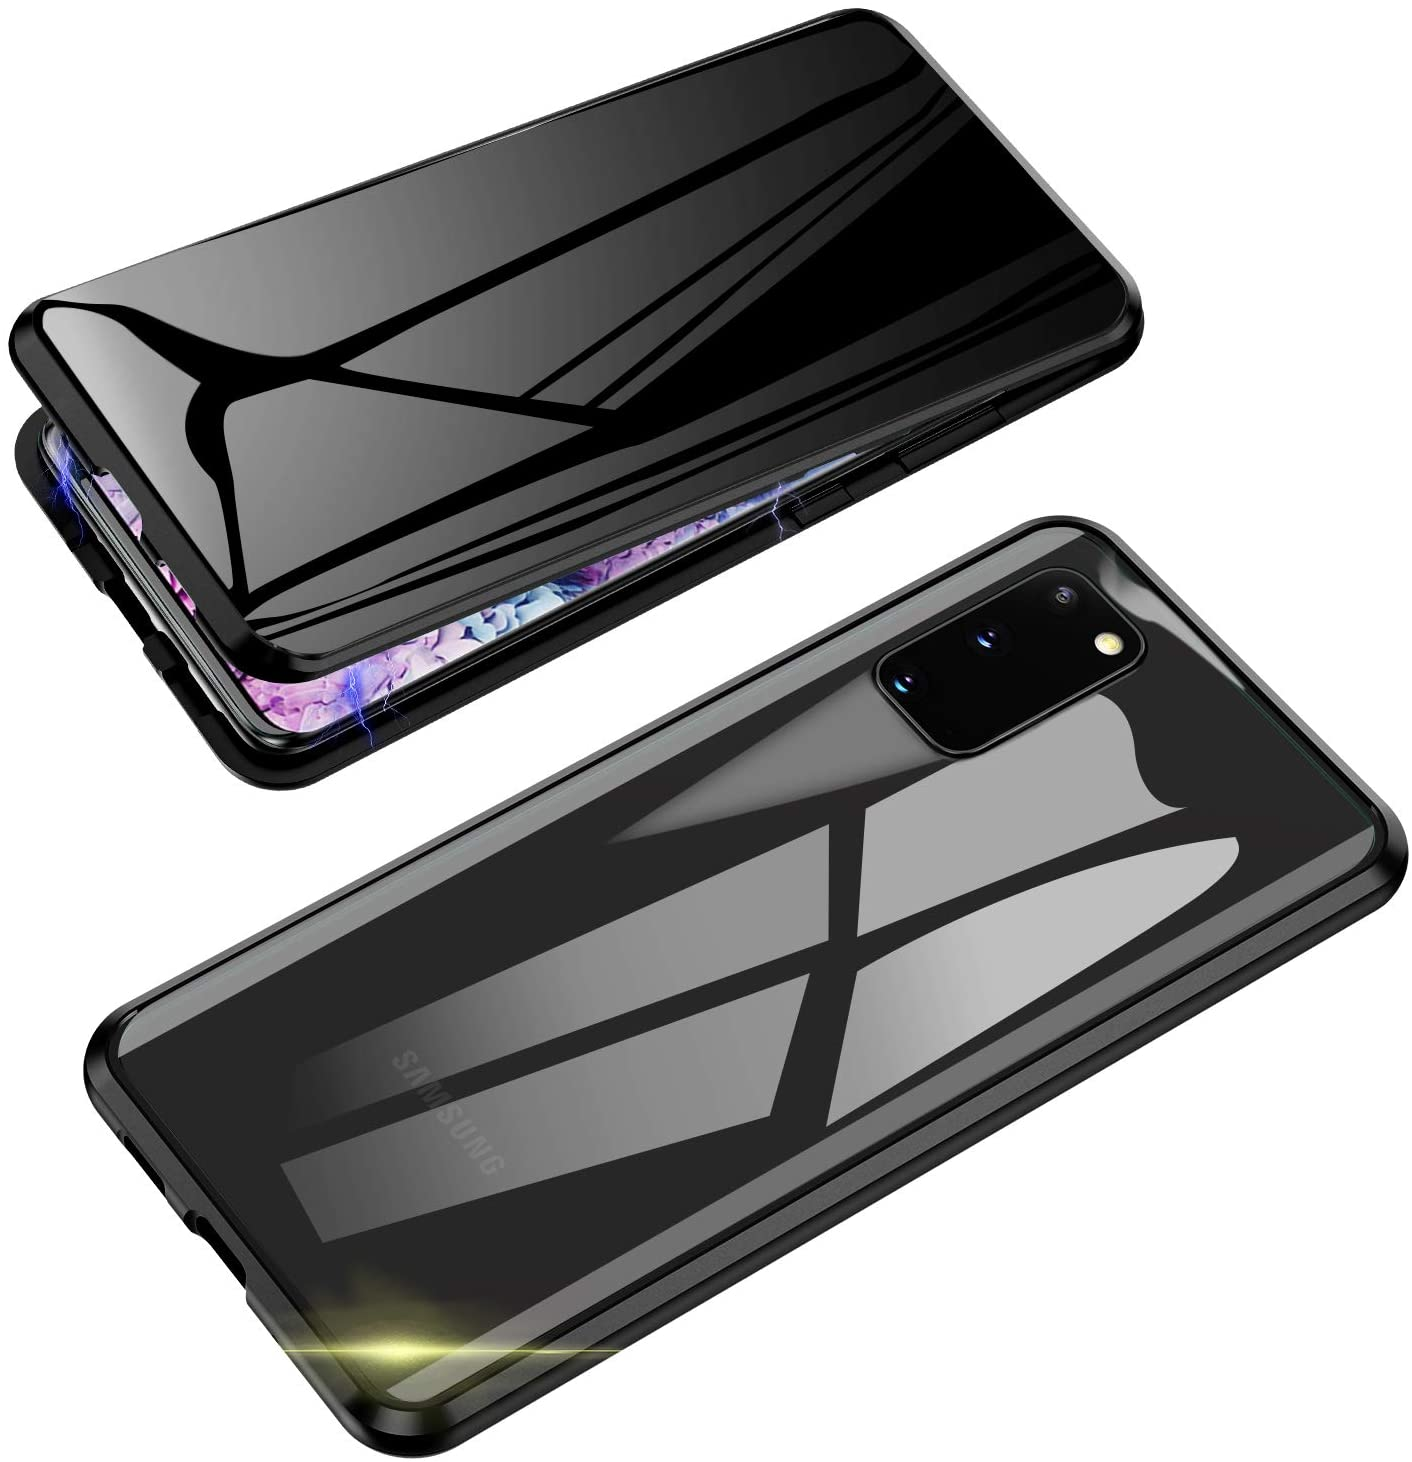 Anti-Spy Case for Samsung Galaxy S20, Jonwelsy 360 Degree Front and Back Privacy Tempered Glass Cover, Anti Peeping Screen, Magnetic Adsorption Metal Bumper for Samsung Galaxy S20 (Black)